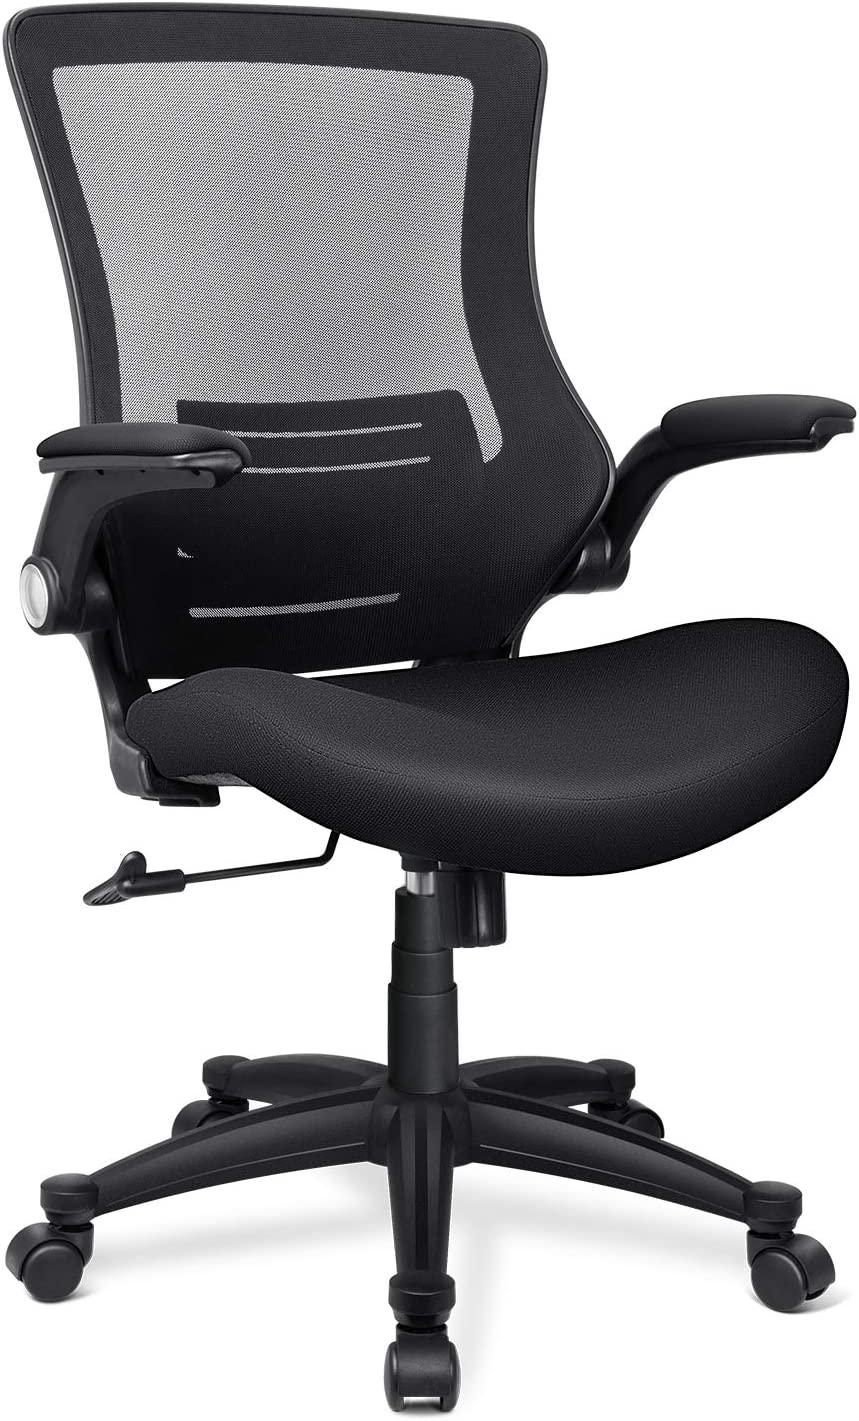 Funria Mid Back Mesh Office Chair Ergonomic Swivel Black Task Office Chair with Flip-Up Arms Lumbar Support Computer Desk Chairs